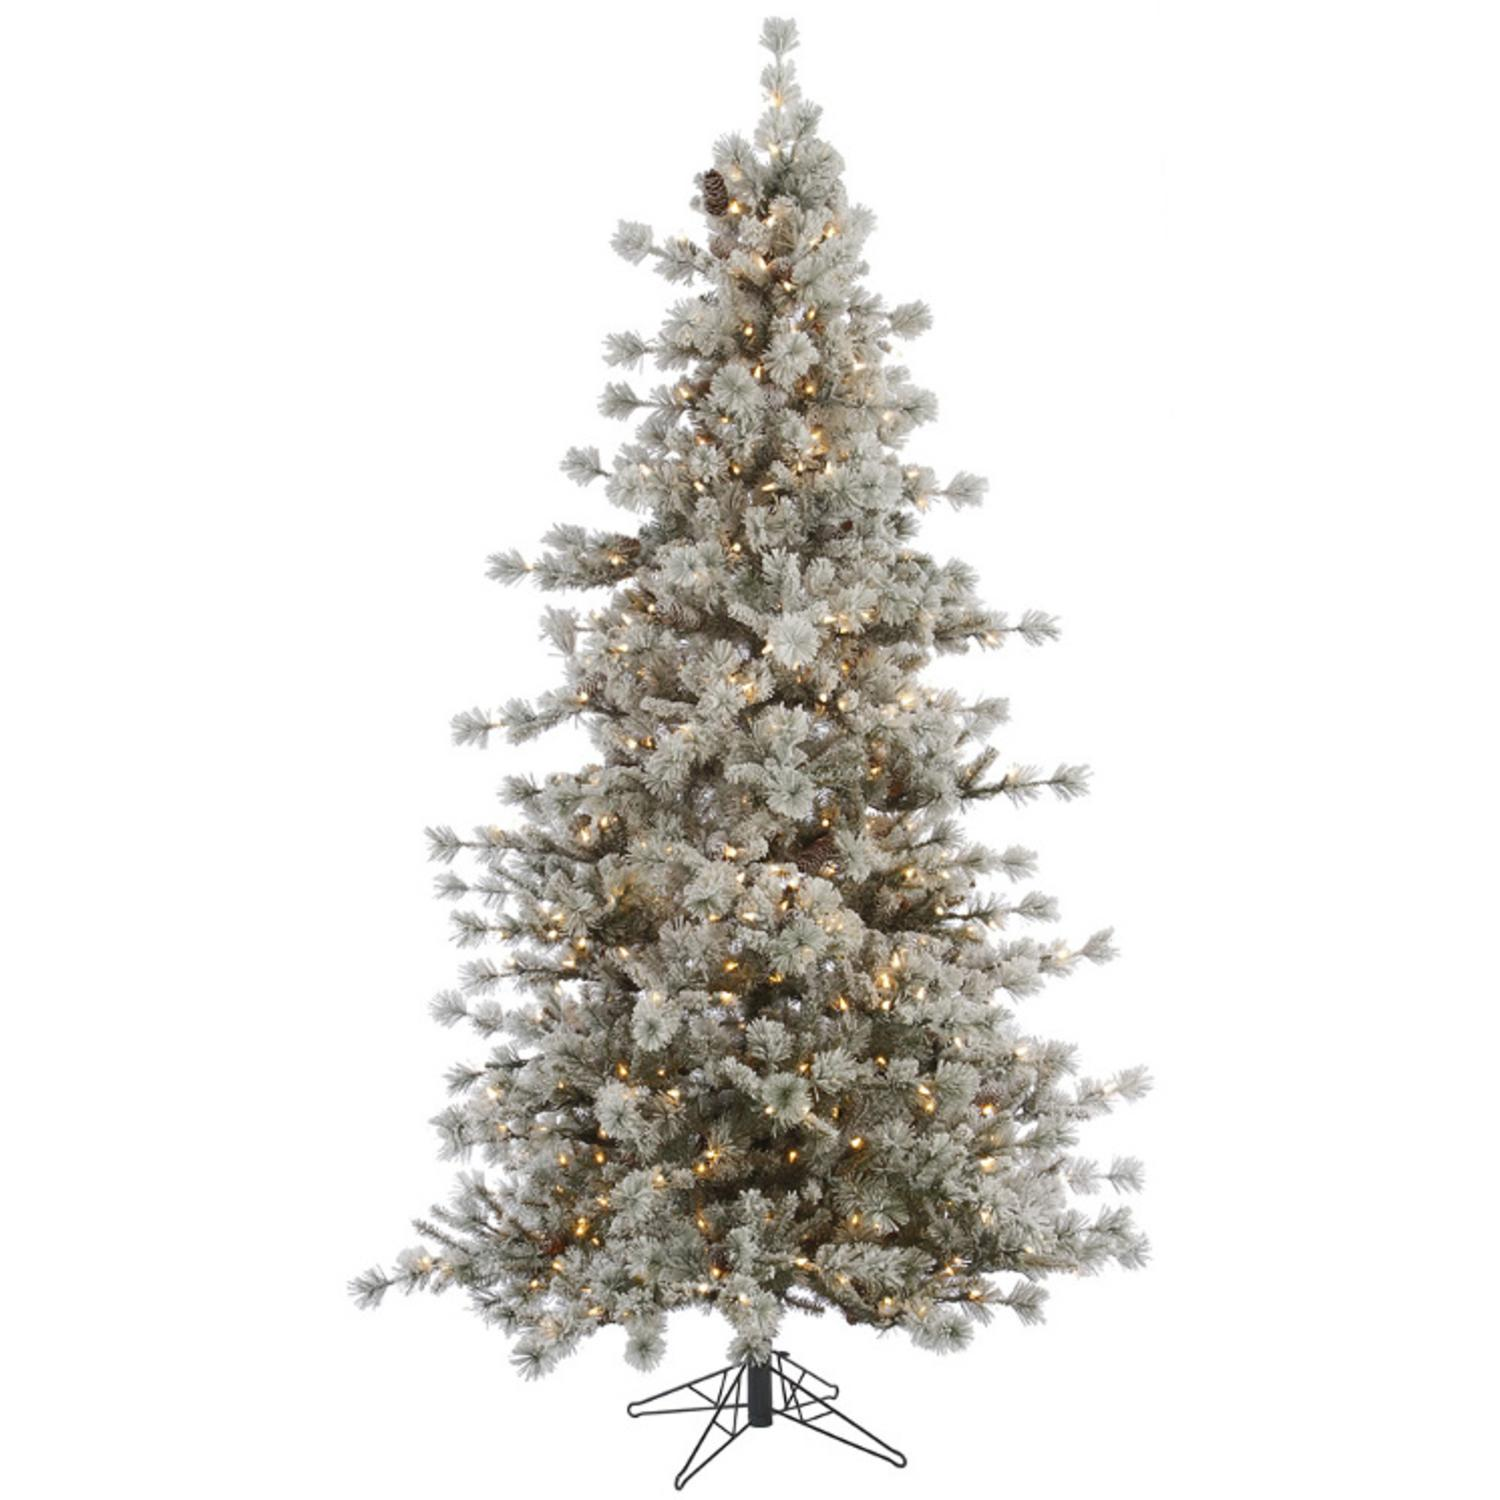 10' Slim Pre-lit Flocked Anchorage Artificial Christmas Tree - Clear Dura Lights